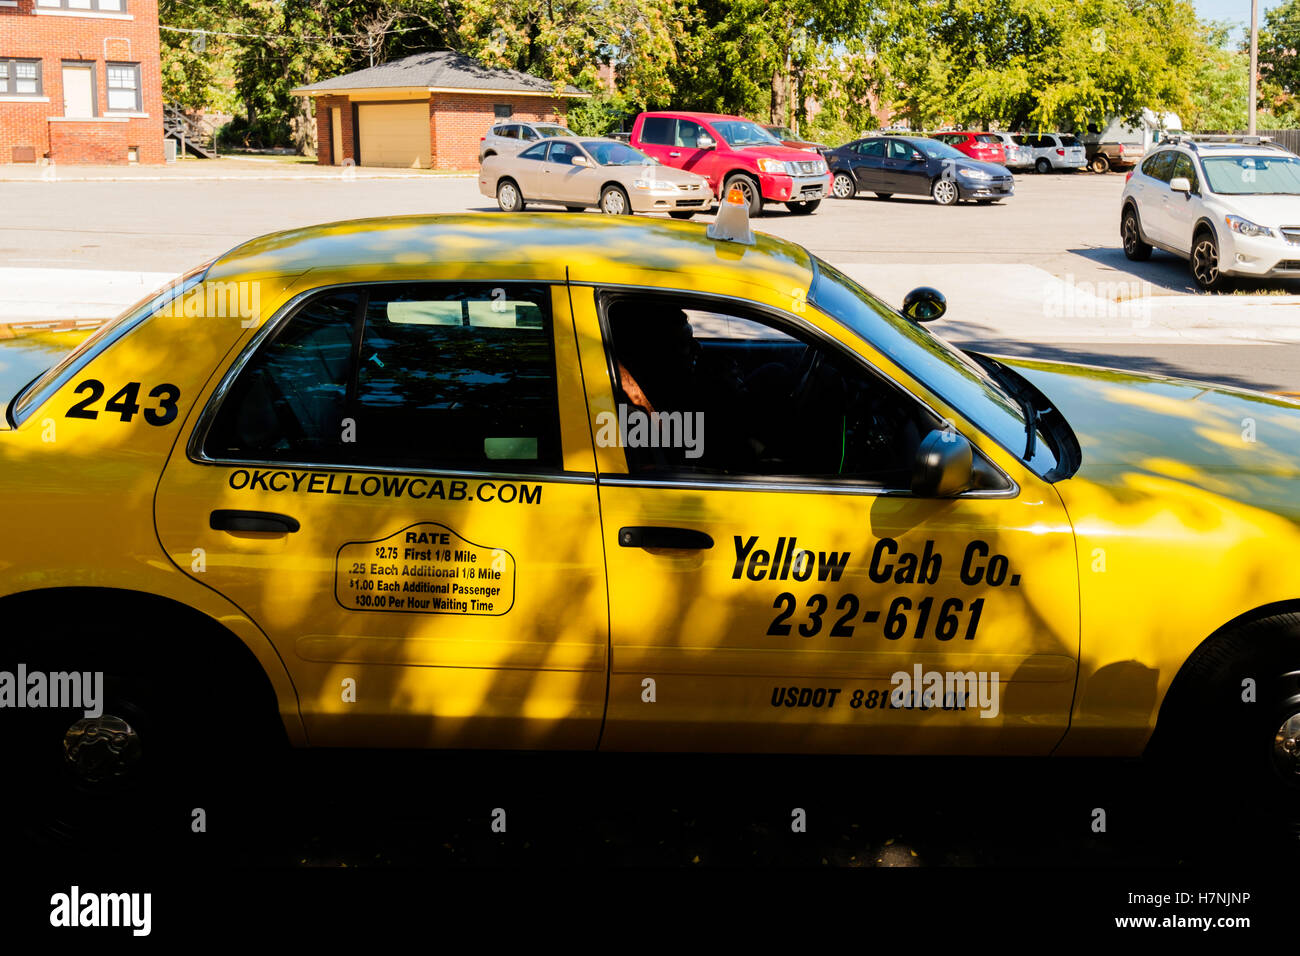 A taxi driver from Yellow Cab Co. waits for a fare in Oklahoma City, Oklahoma, USA. - Stock Image